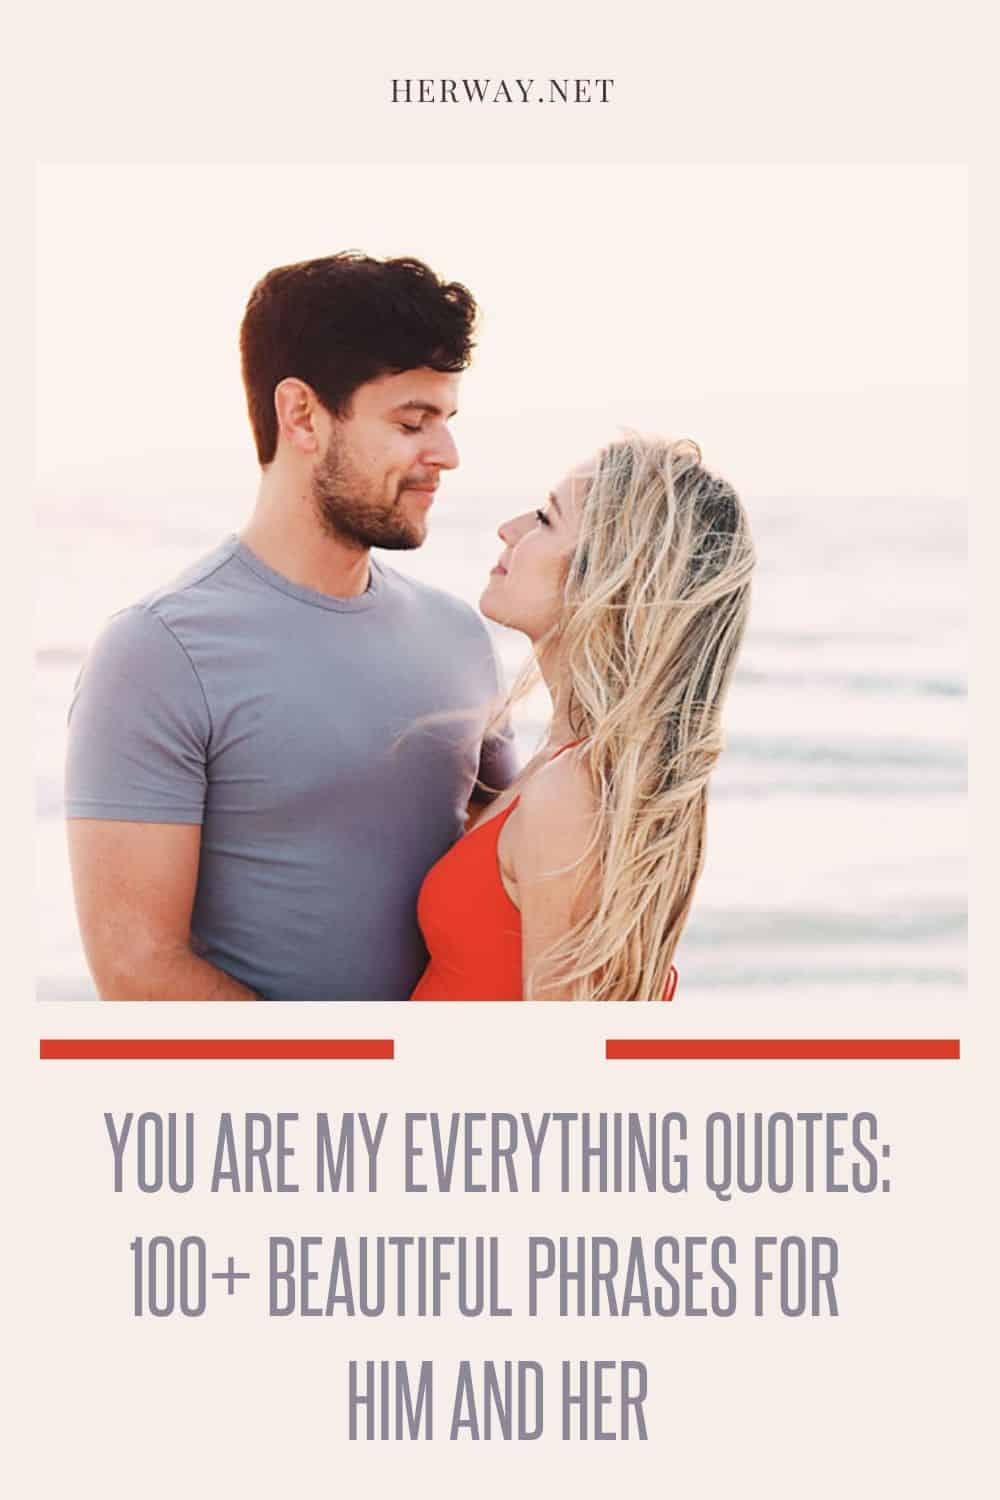 You Are My Everything Quotes_ 100+ Beautiful Phrases For Him And Her